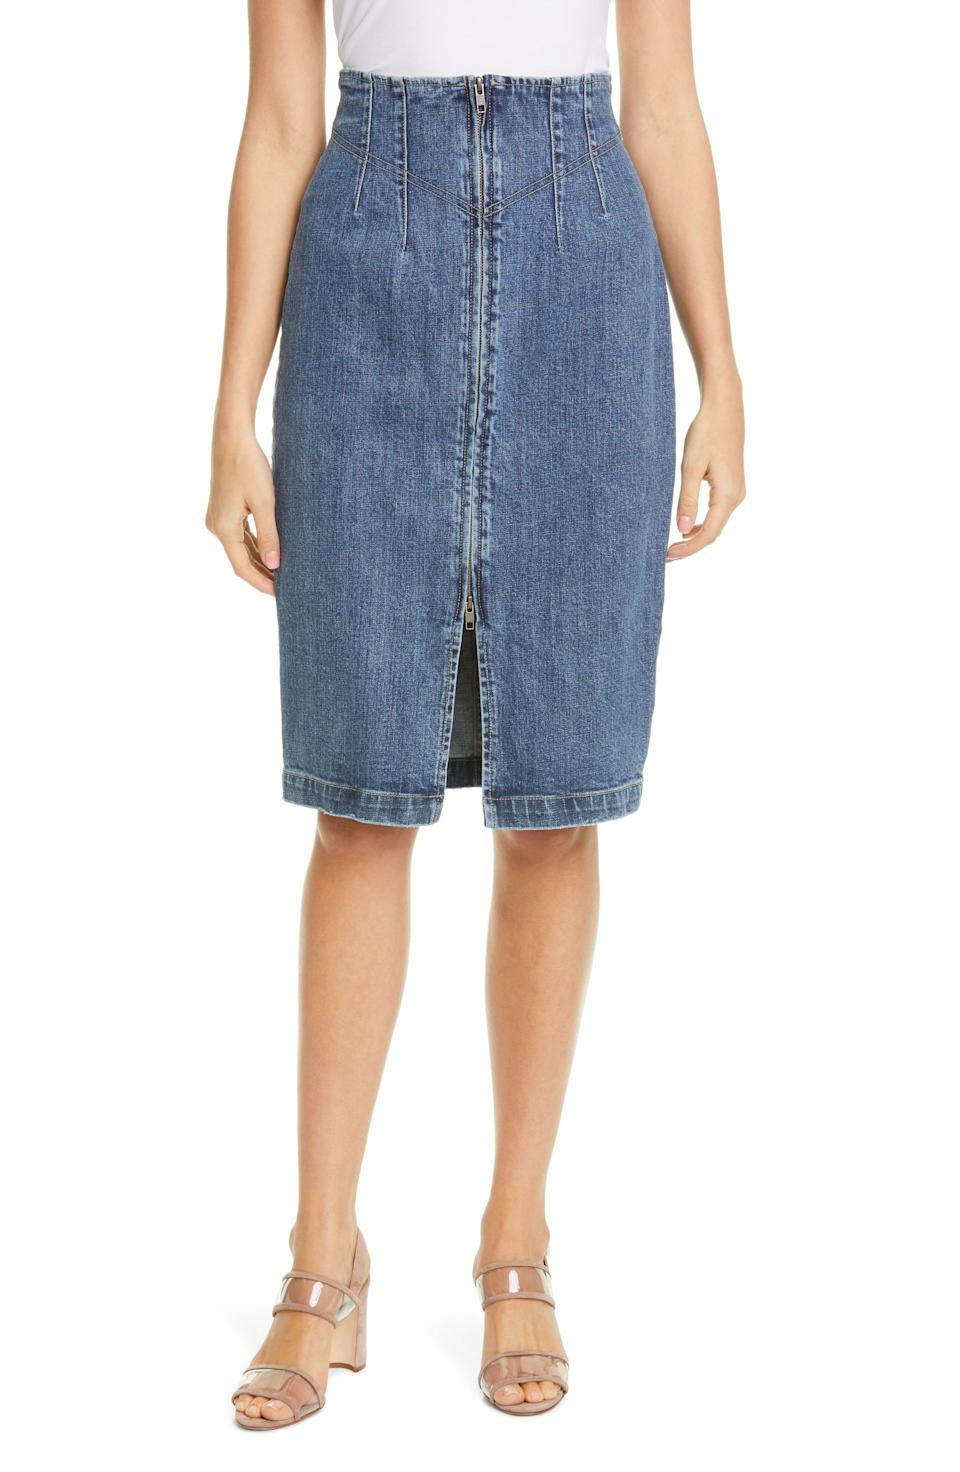 """<p><strong>LA VIE REBECCA TAYLOR</strong></p><p>nordstrom.com</p><p><strong>$150.00</strong></p><p><a href=""""https://go.redirectingat.com?id=74968X1596630&url=https%3A%2F%2Fshop.nordstrom.com%2Fs%2Fla-vie-rebecca-taylor-denim-skirt%2F5577196&sref=https%3A%2F%2Fwww.marieclaire.com%2Ffashion%2Fstreet-style%2Fg32046163%2Fbest-denim-skirts%2F"""" rel=""""nofollow noopener"""" target=""""_blank"""" data-ylk=""""slk:Shop It"""" class=""""link rapid-noclick-resp"""">Shop It</a></p><p>We love the front zipper on this feminine denim skirt. Wear it with a silk blouse tucked in to show off the shaped waistline. </p>"""